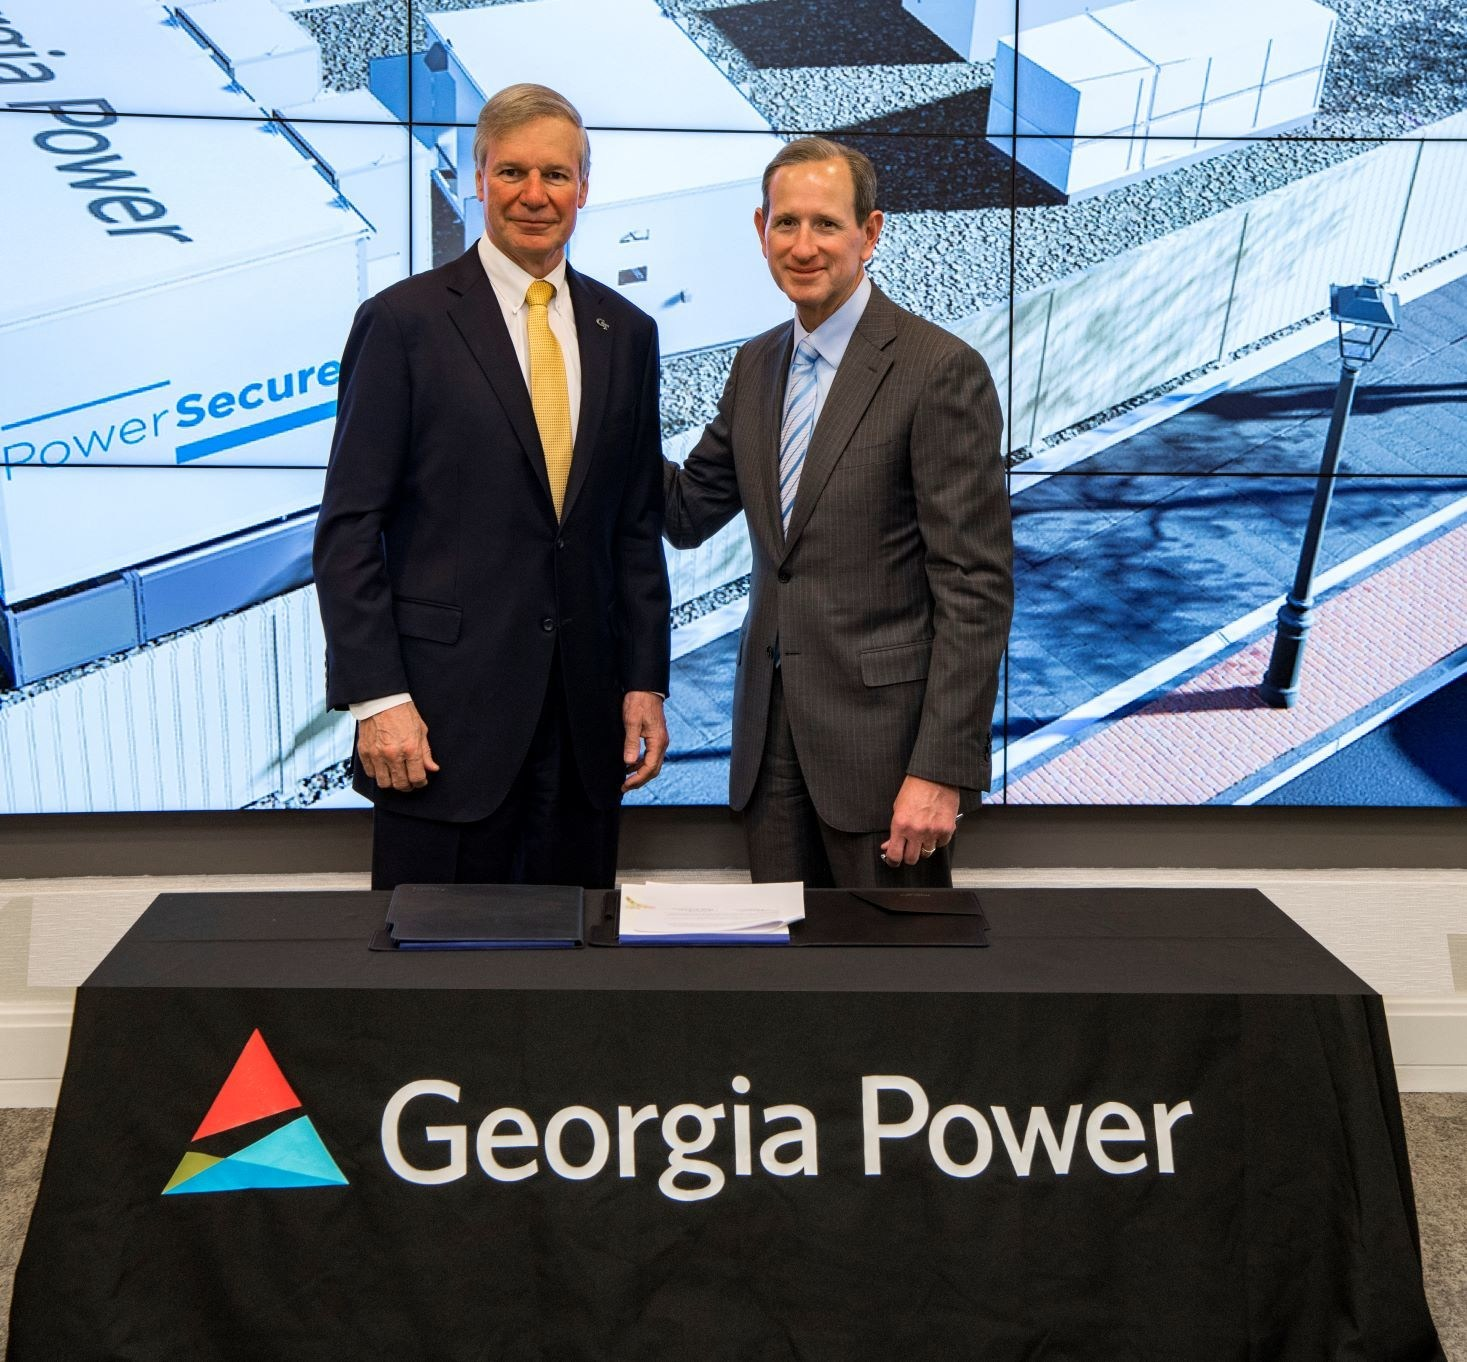 """Georgia Tech President G. P. """"Bud"""" Peterson and Chairman, President and CEO for Georgia Power Paul Bowers at Georgia Power Microgrid for Tech Square MOU Signing Ceremony"""